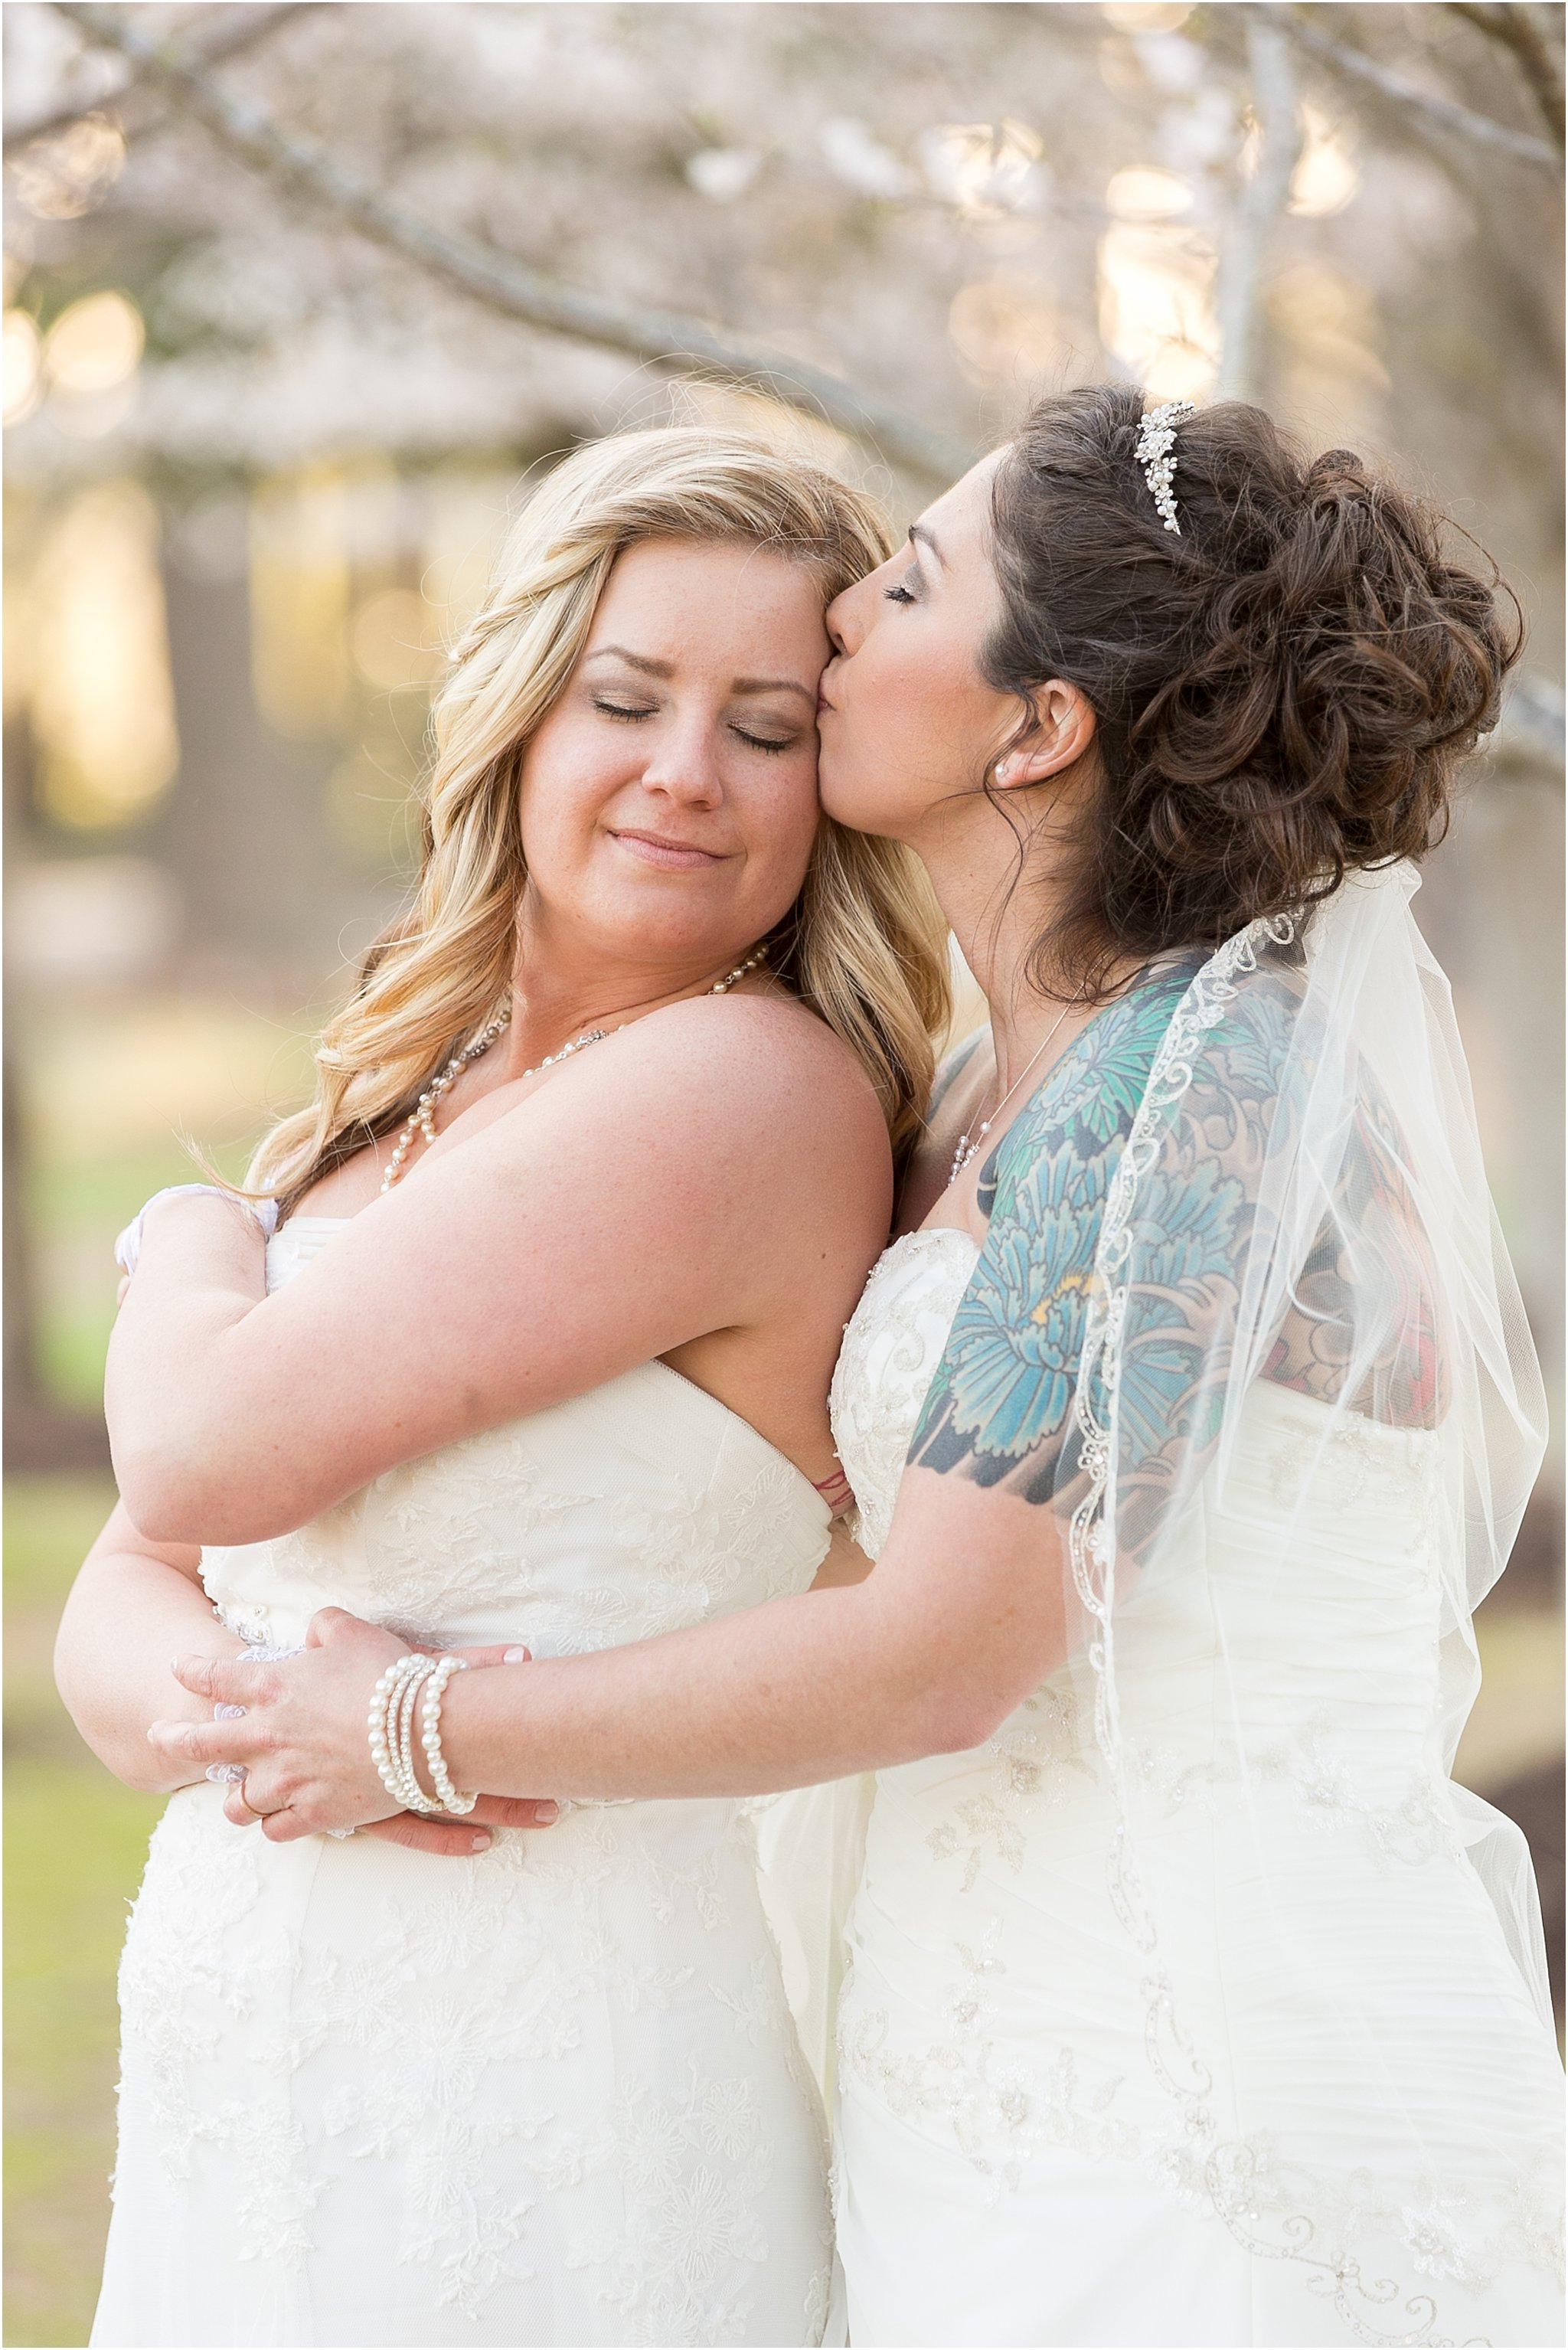 jessica_ryan_photography_redwingpark_wedding_virginia_beach_hampton_roads_1261